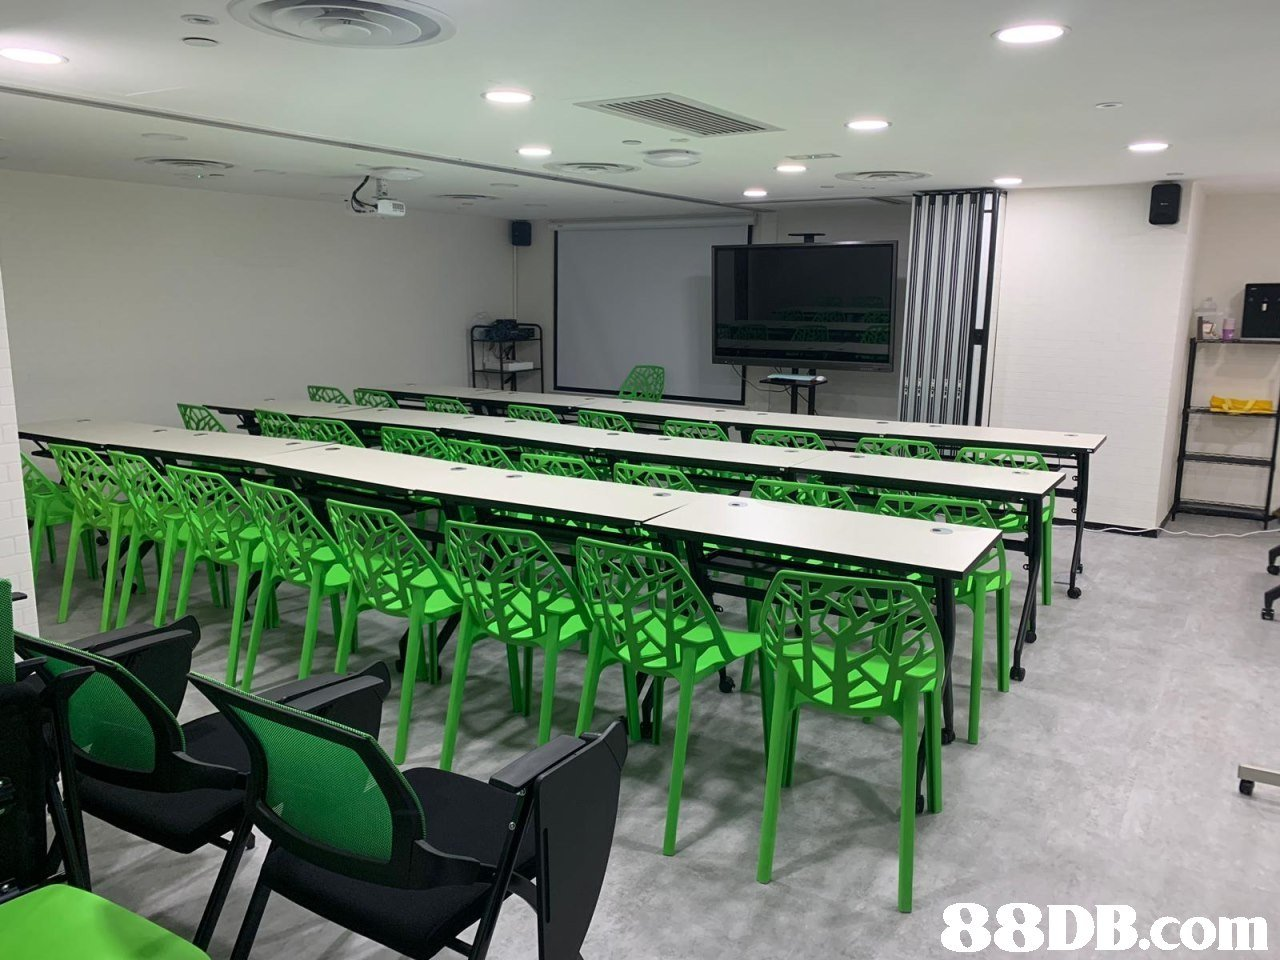 conference hall,auditorium,table,classroom,